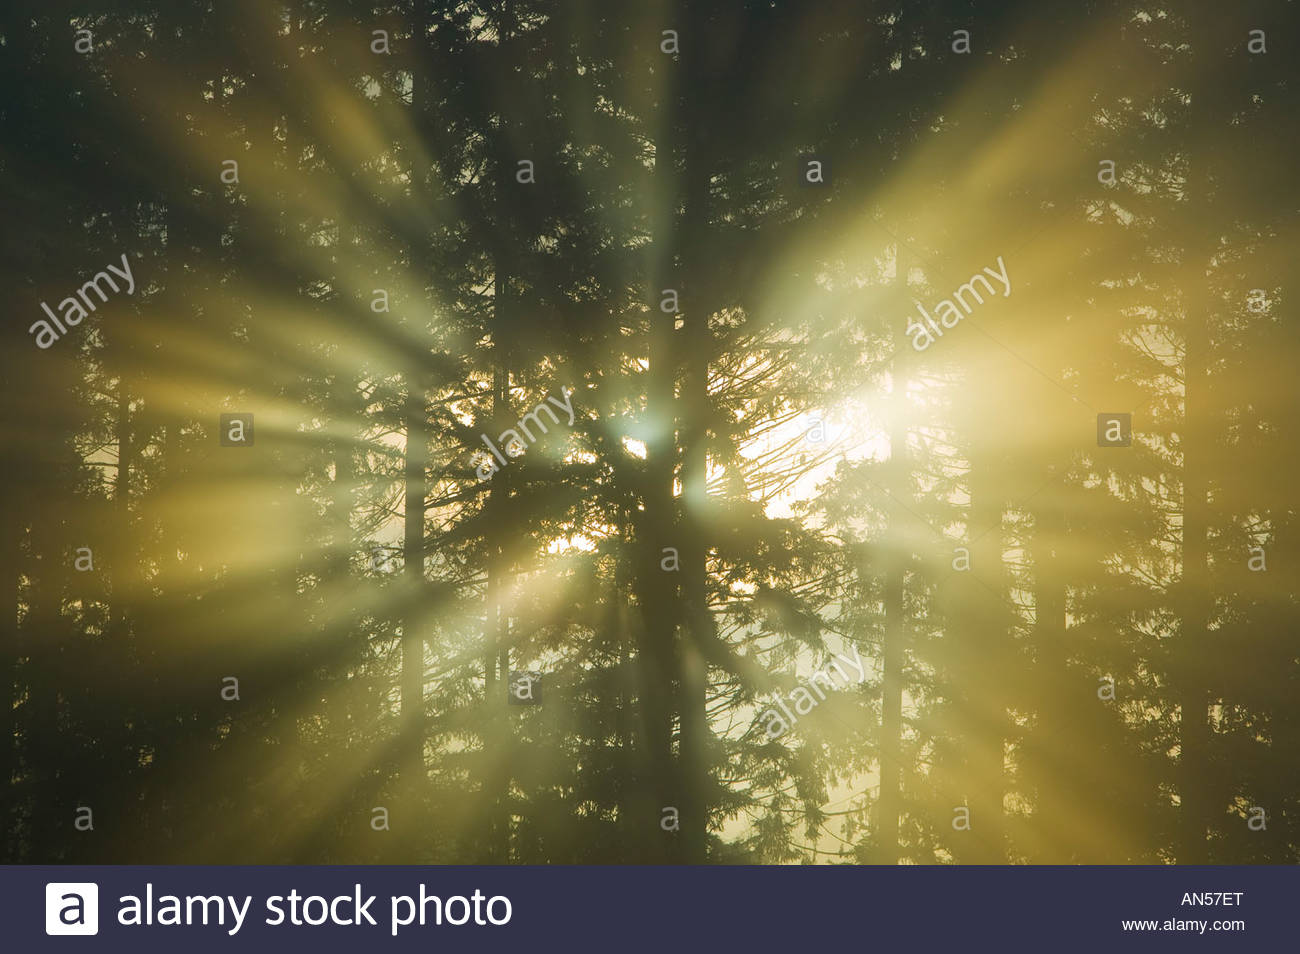 The sun's rays shine through trees into early morning fog, creating dramatic beams known as crepuscular rays. - Stock Image